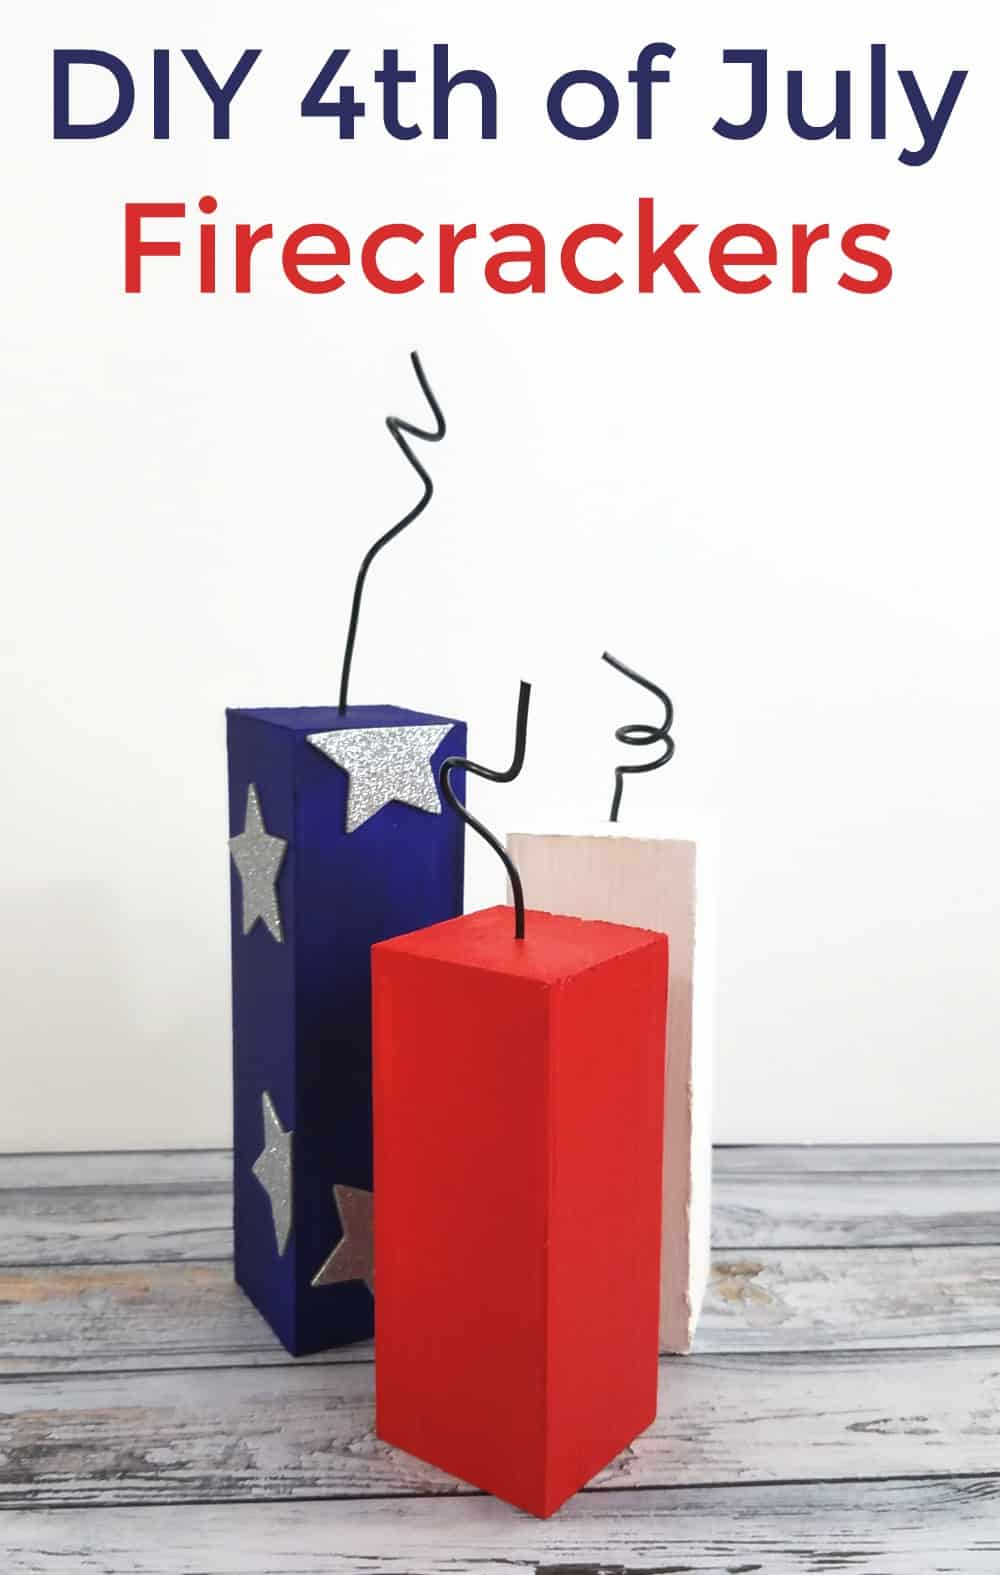 DIY 4th of July Firecrackers Craft